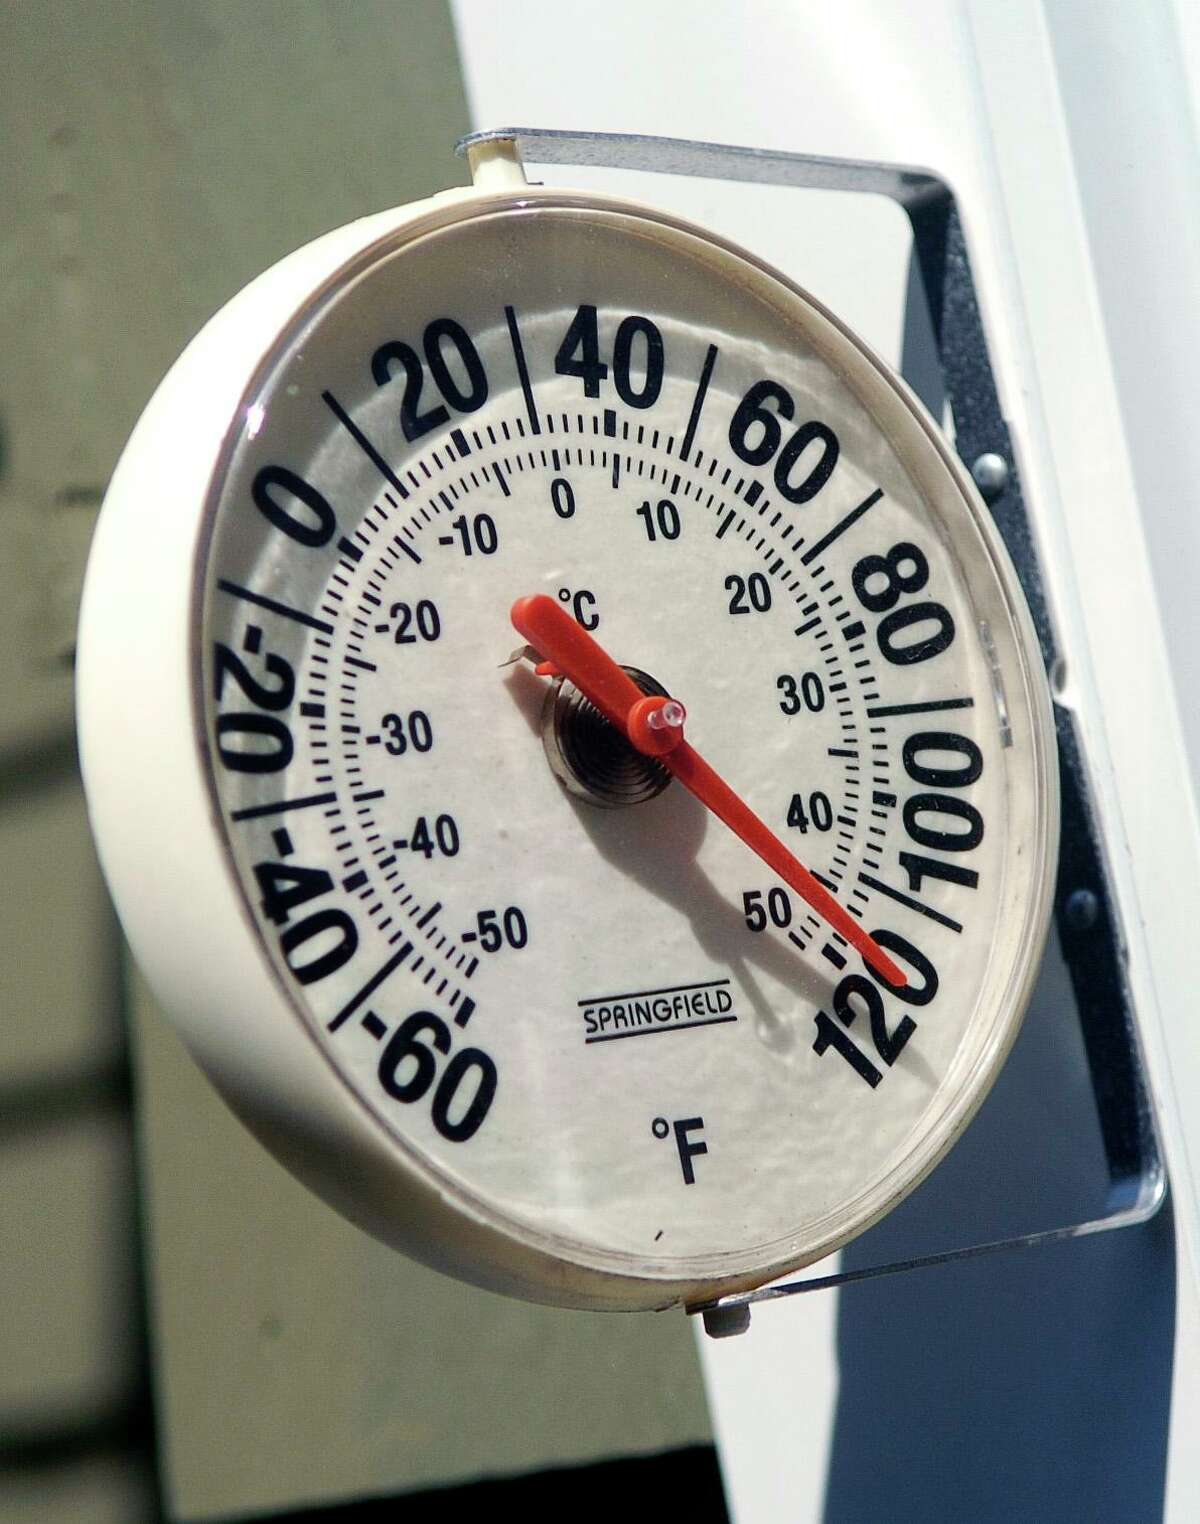 A thermometer in the sun in downtown Stamford during a recent heat wave.